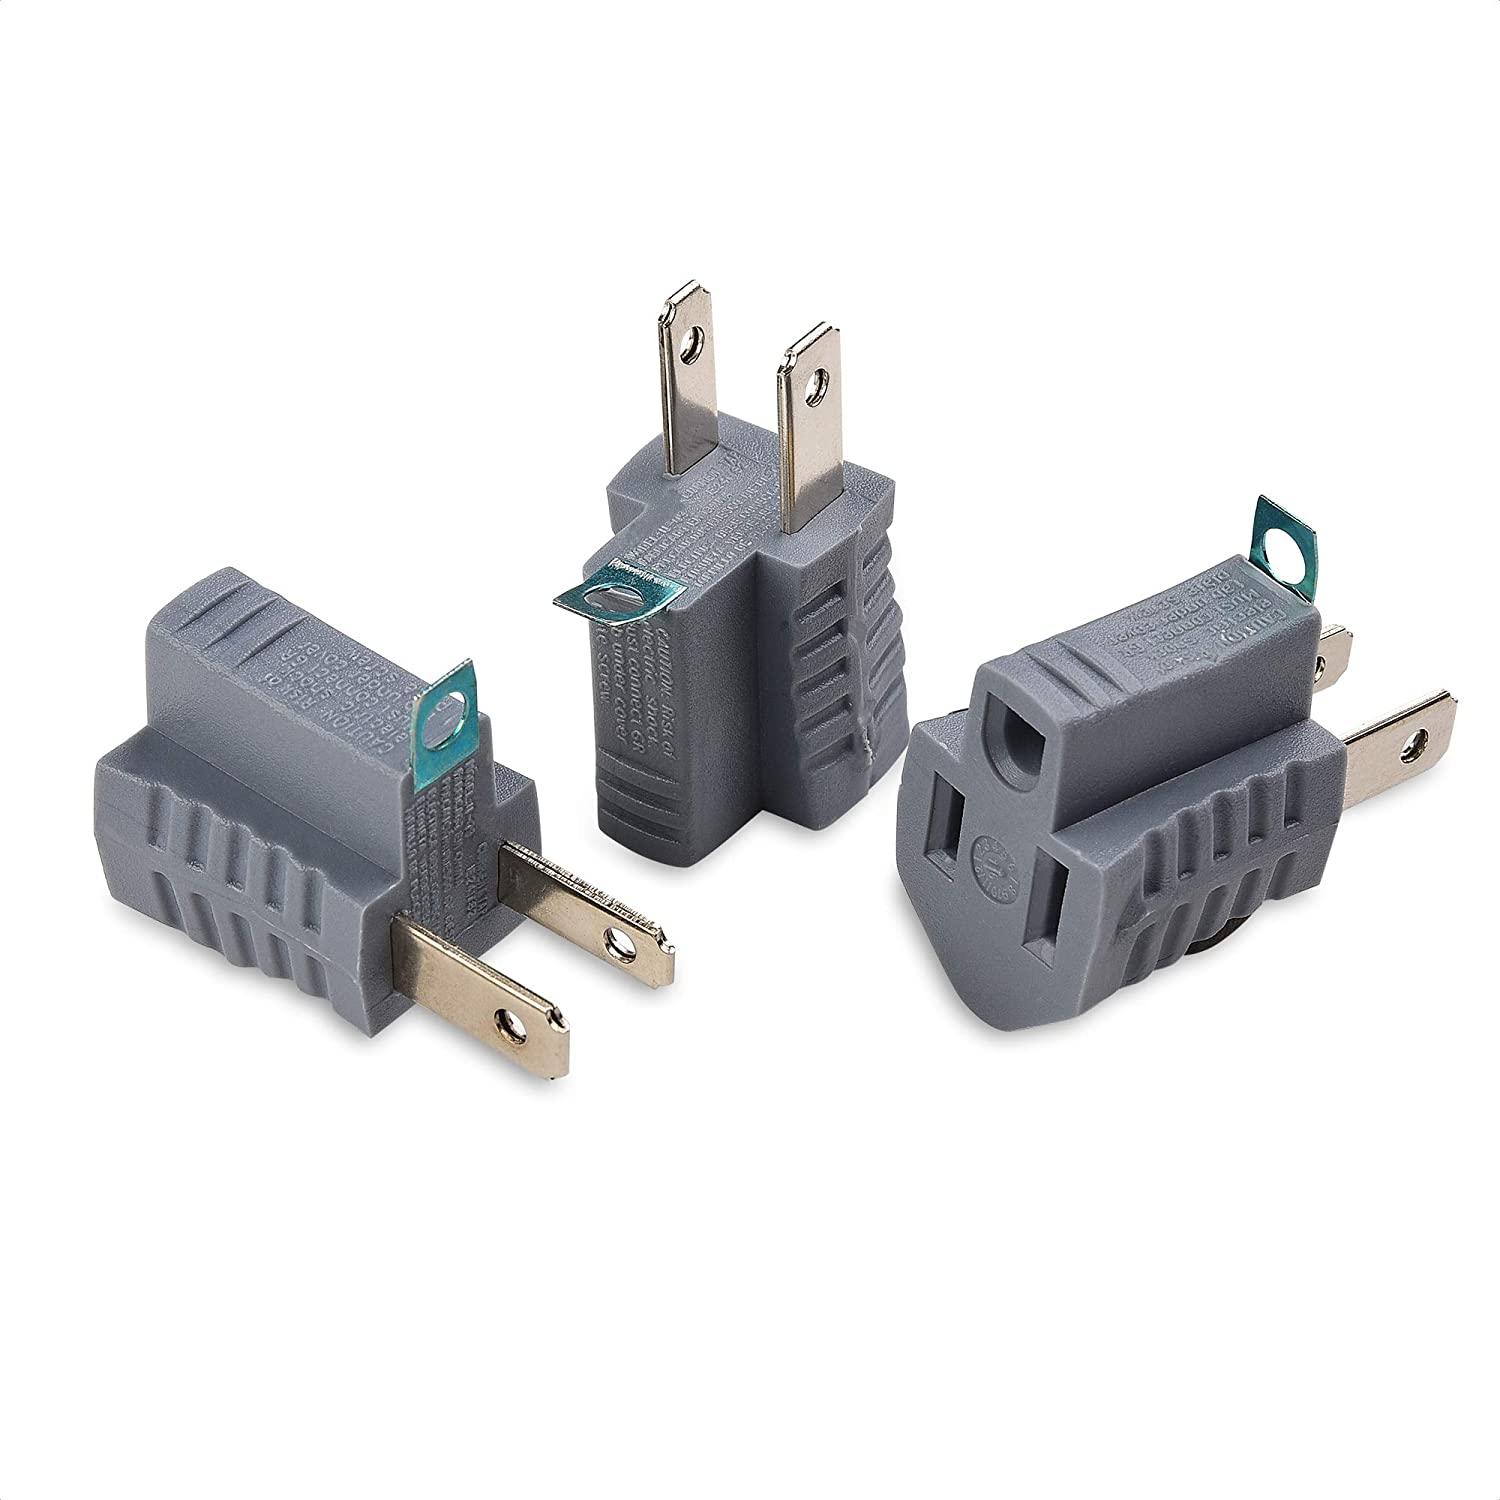 Cable Matters 3-Pack UL Listed 2 3 Prong Atlanta Mall Max 90% OFF to Pro Adapter